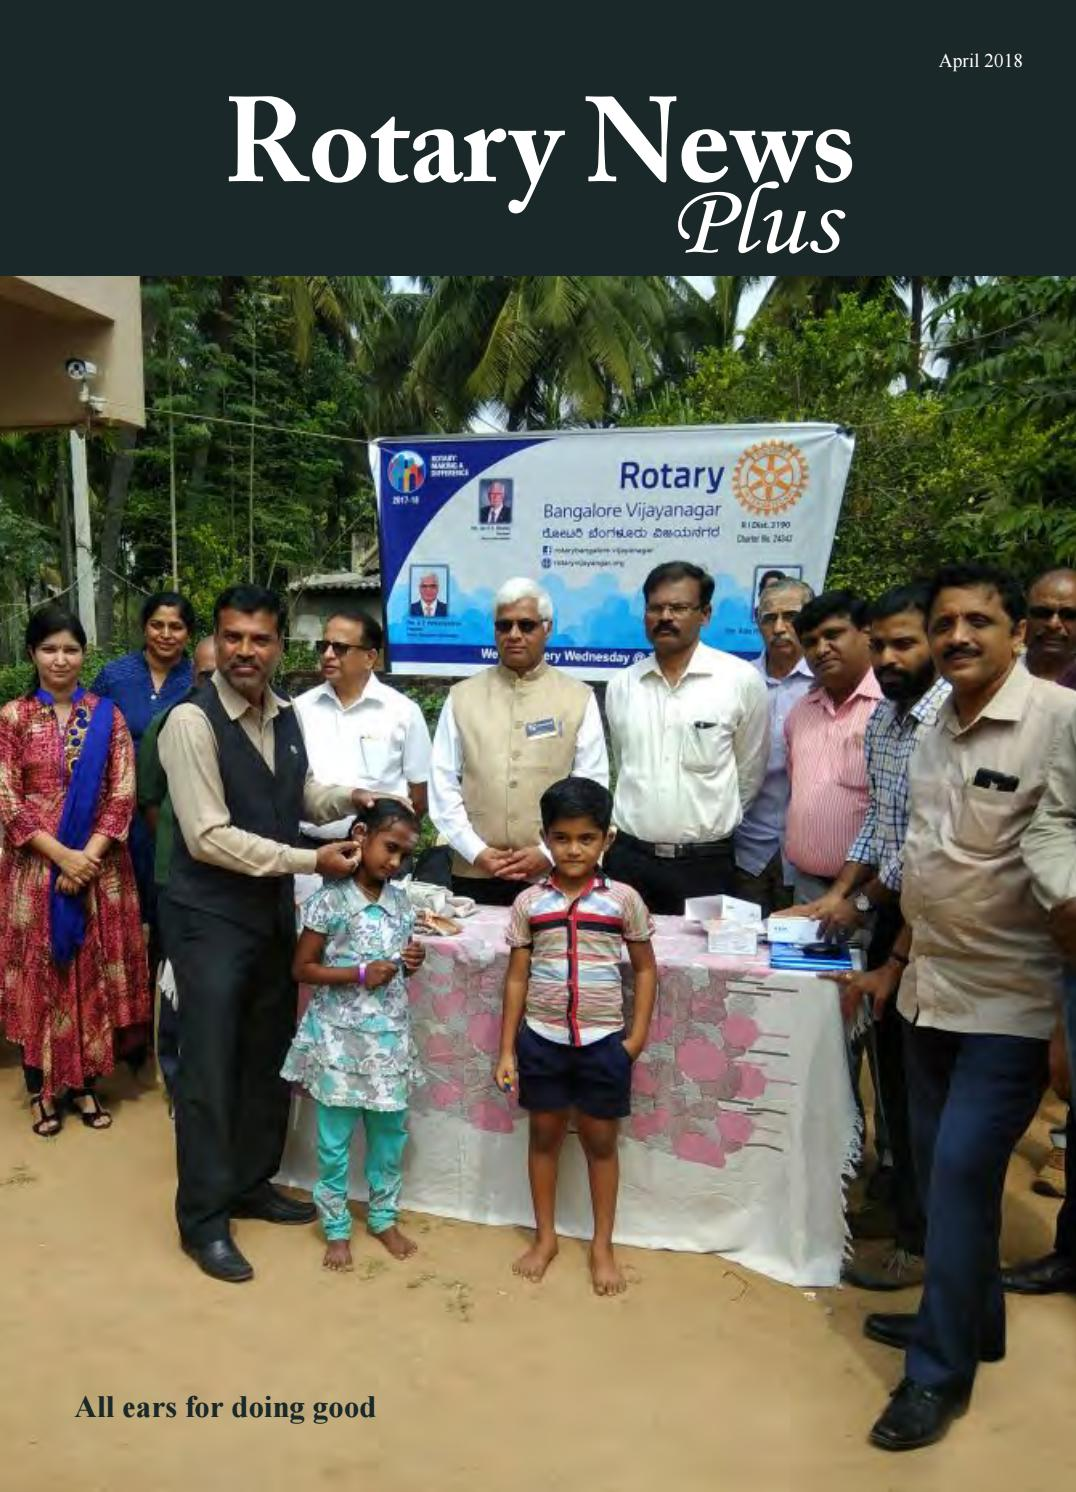 Rotary News Plus - April 2018 by Rotary News - issuu